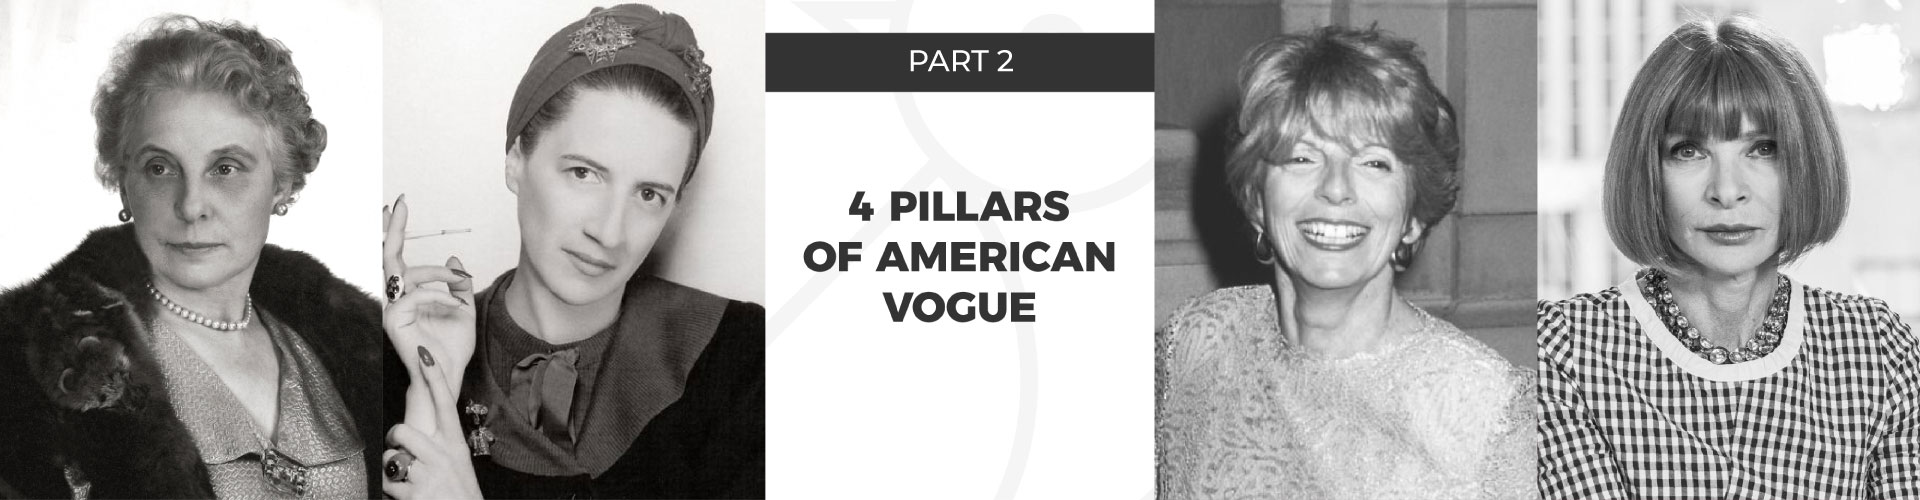 4 pillars of American Vogue - part 2